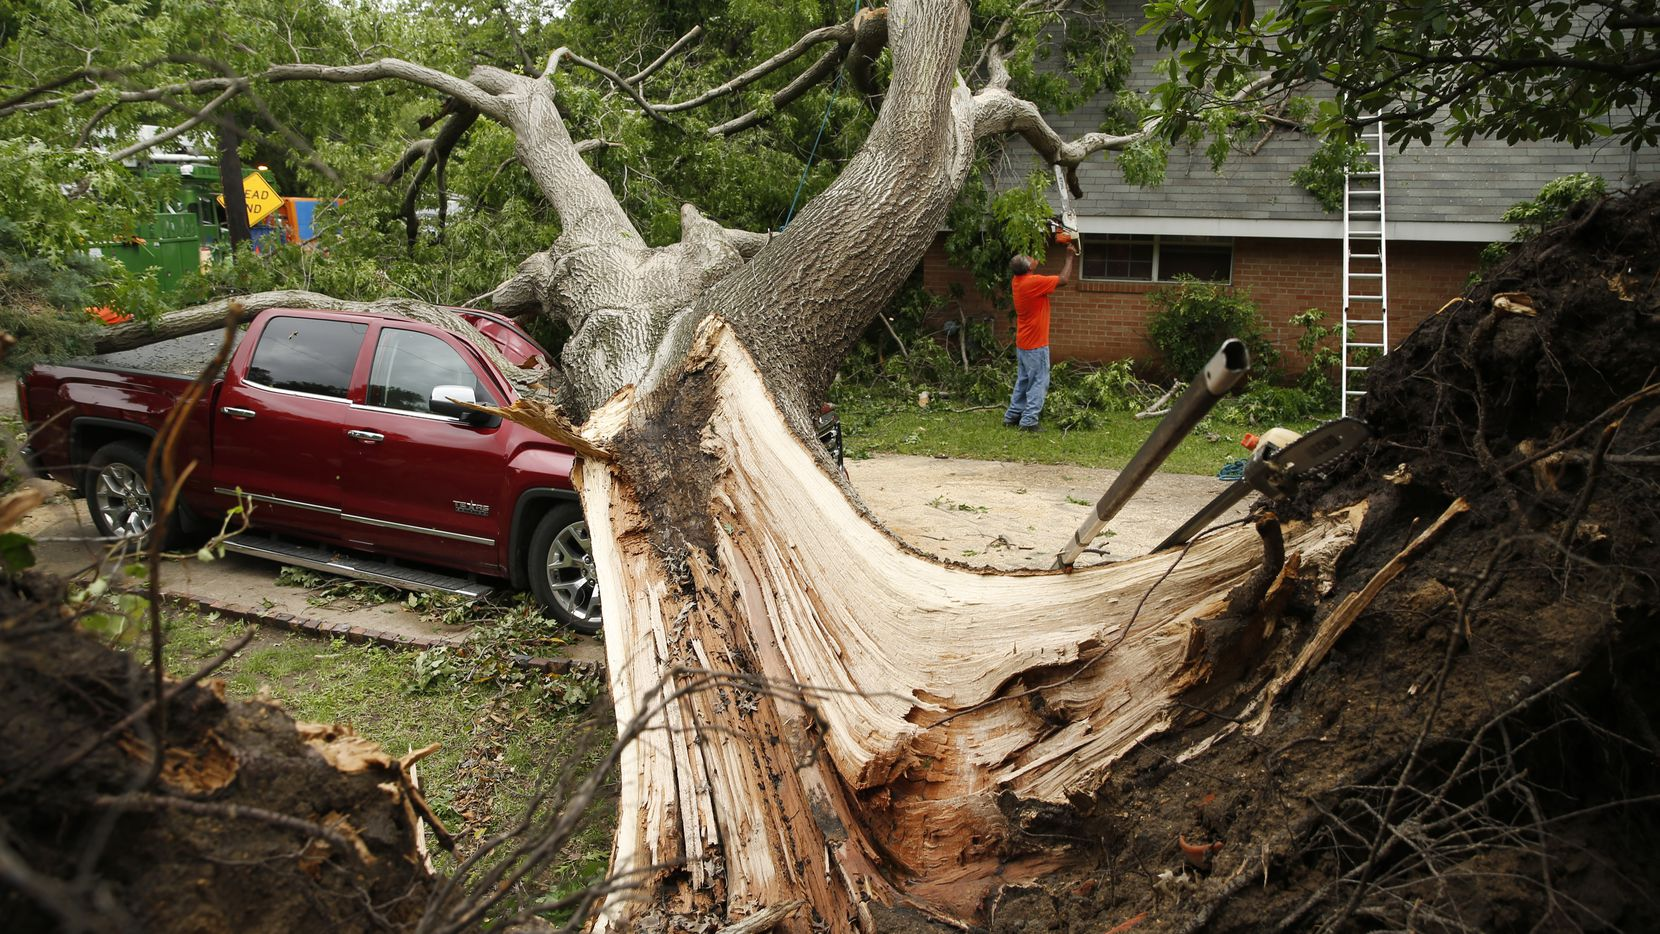 A red oak tree that fell as a tornado passed through Denton the previous day is seen on May 1, 2019. The tree, planted in the 1960s, crushed the pickup and punctured a hole in the roof of the house and a bedroom ceiling, letting rain pour in.